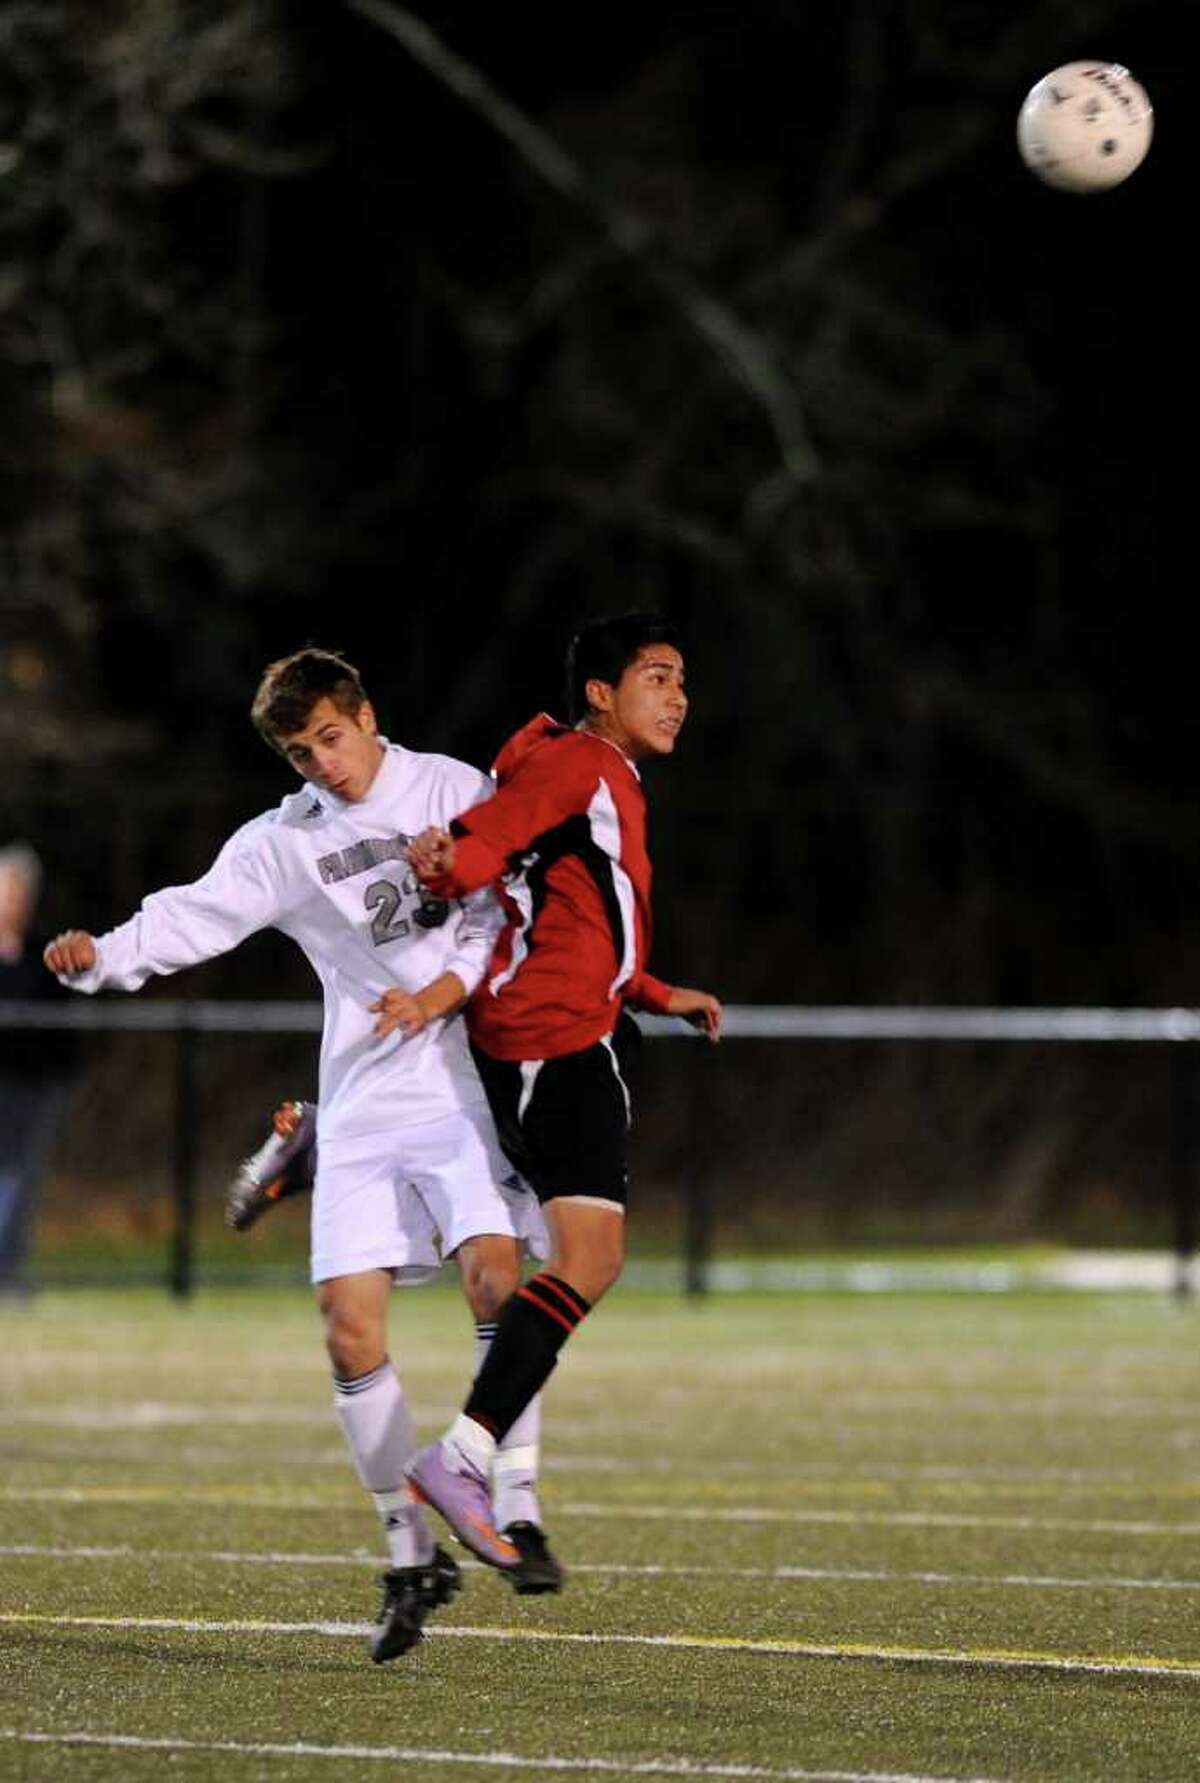 Bridgeport Central's Abelardo Mendoza, right, and Farmington's Danny Manfredi, left, jump to head the ball during the Boys Soccer State Tournament Class LL Semifinal game at Municipal Stadium in Waterbury on Wednesday, November 17, 2010.